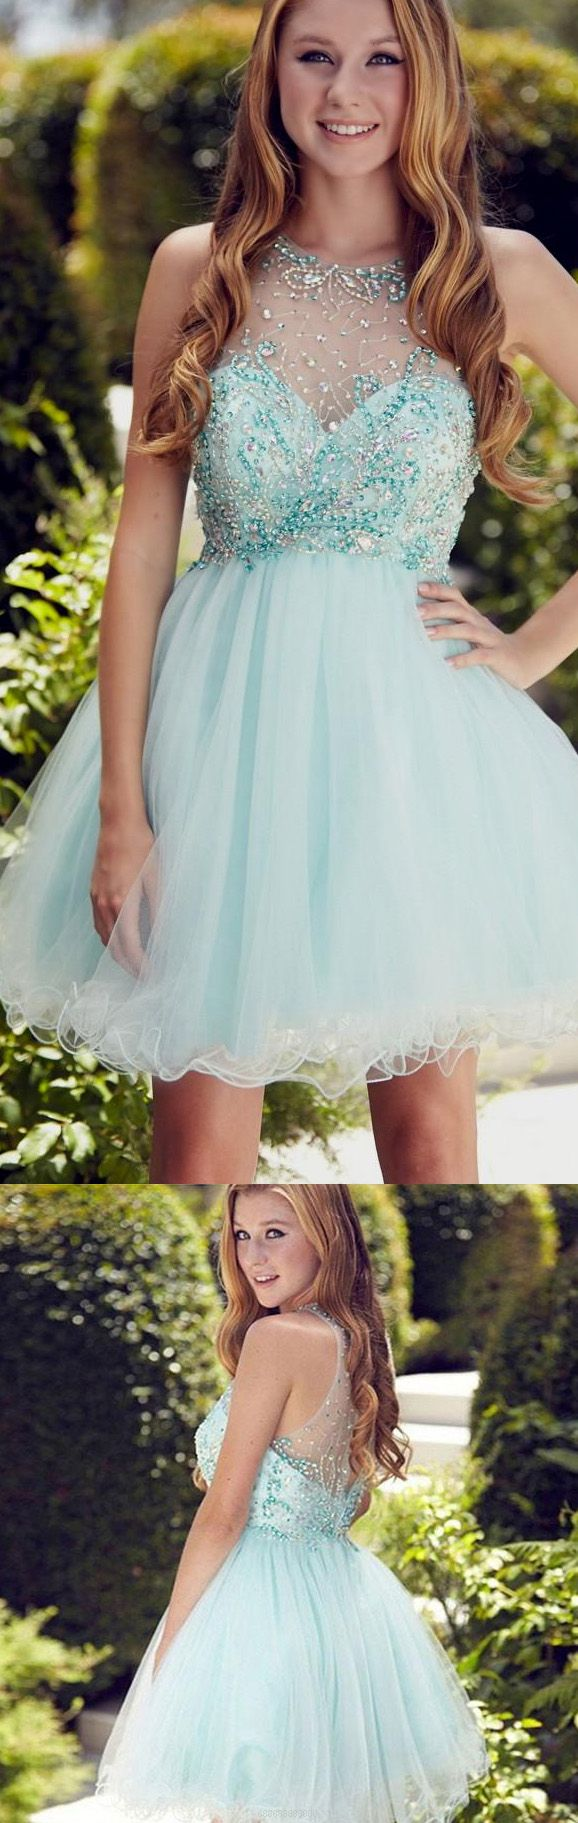 142 best Short Prom Dresses images on Pinterest